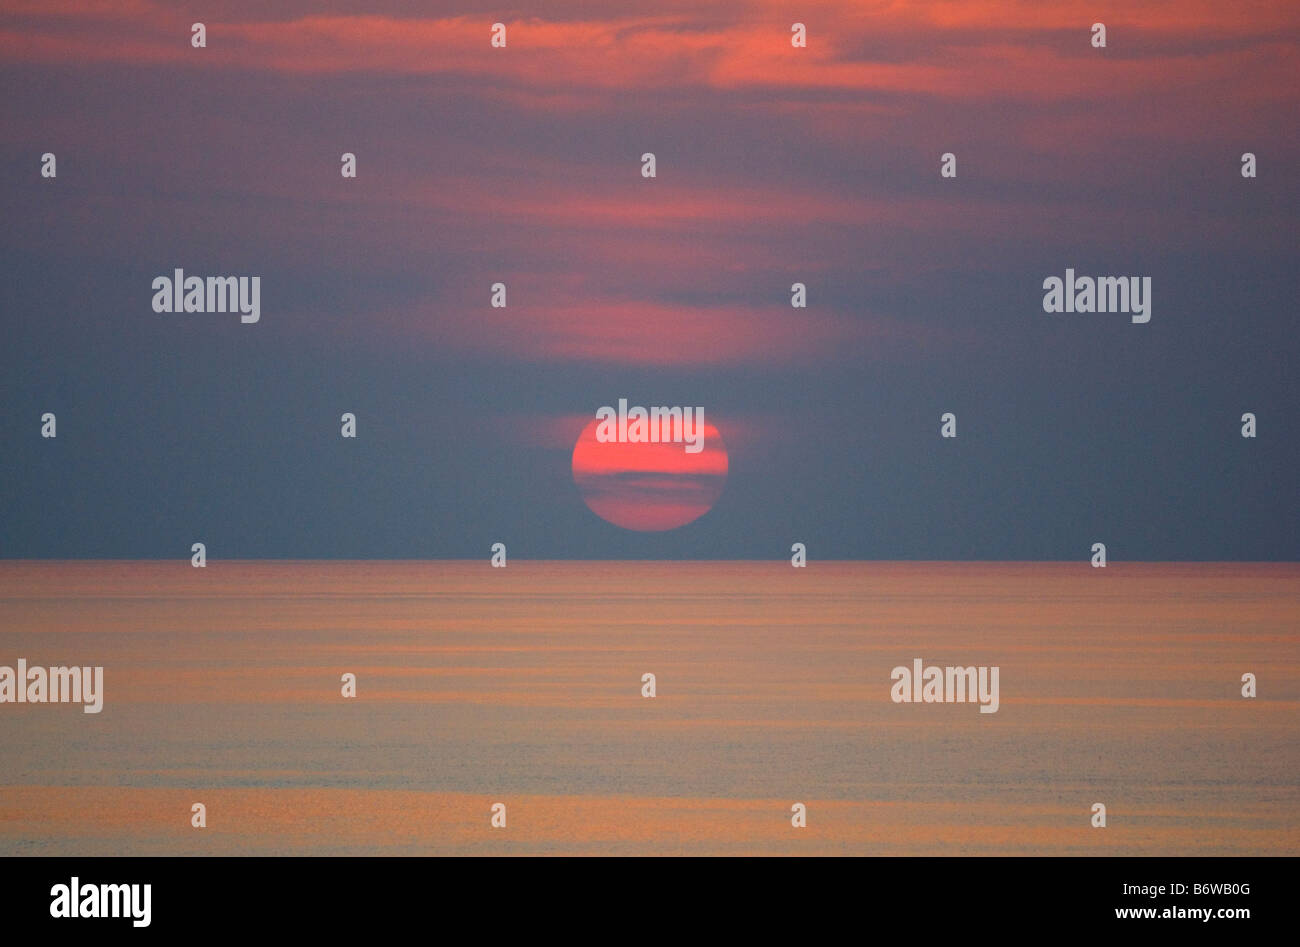 LARGE RED SUN SETTING ON SEA WITH CLOUDS - Stock Image